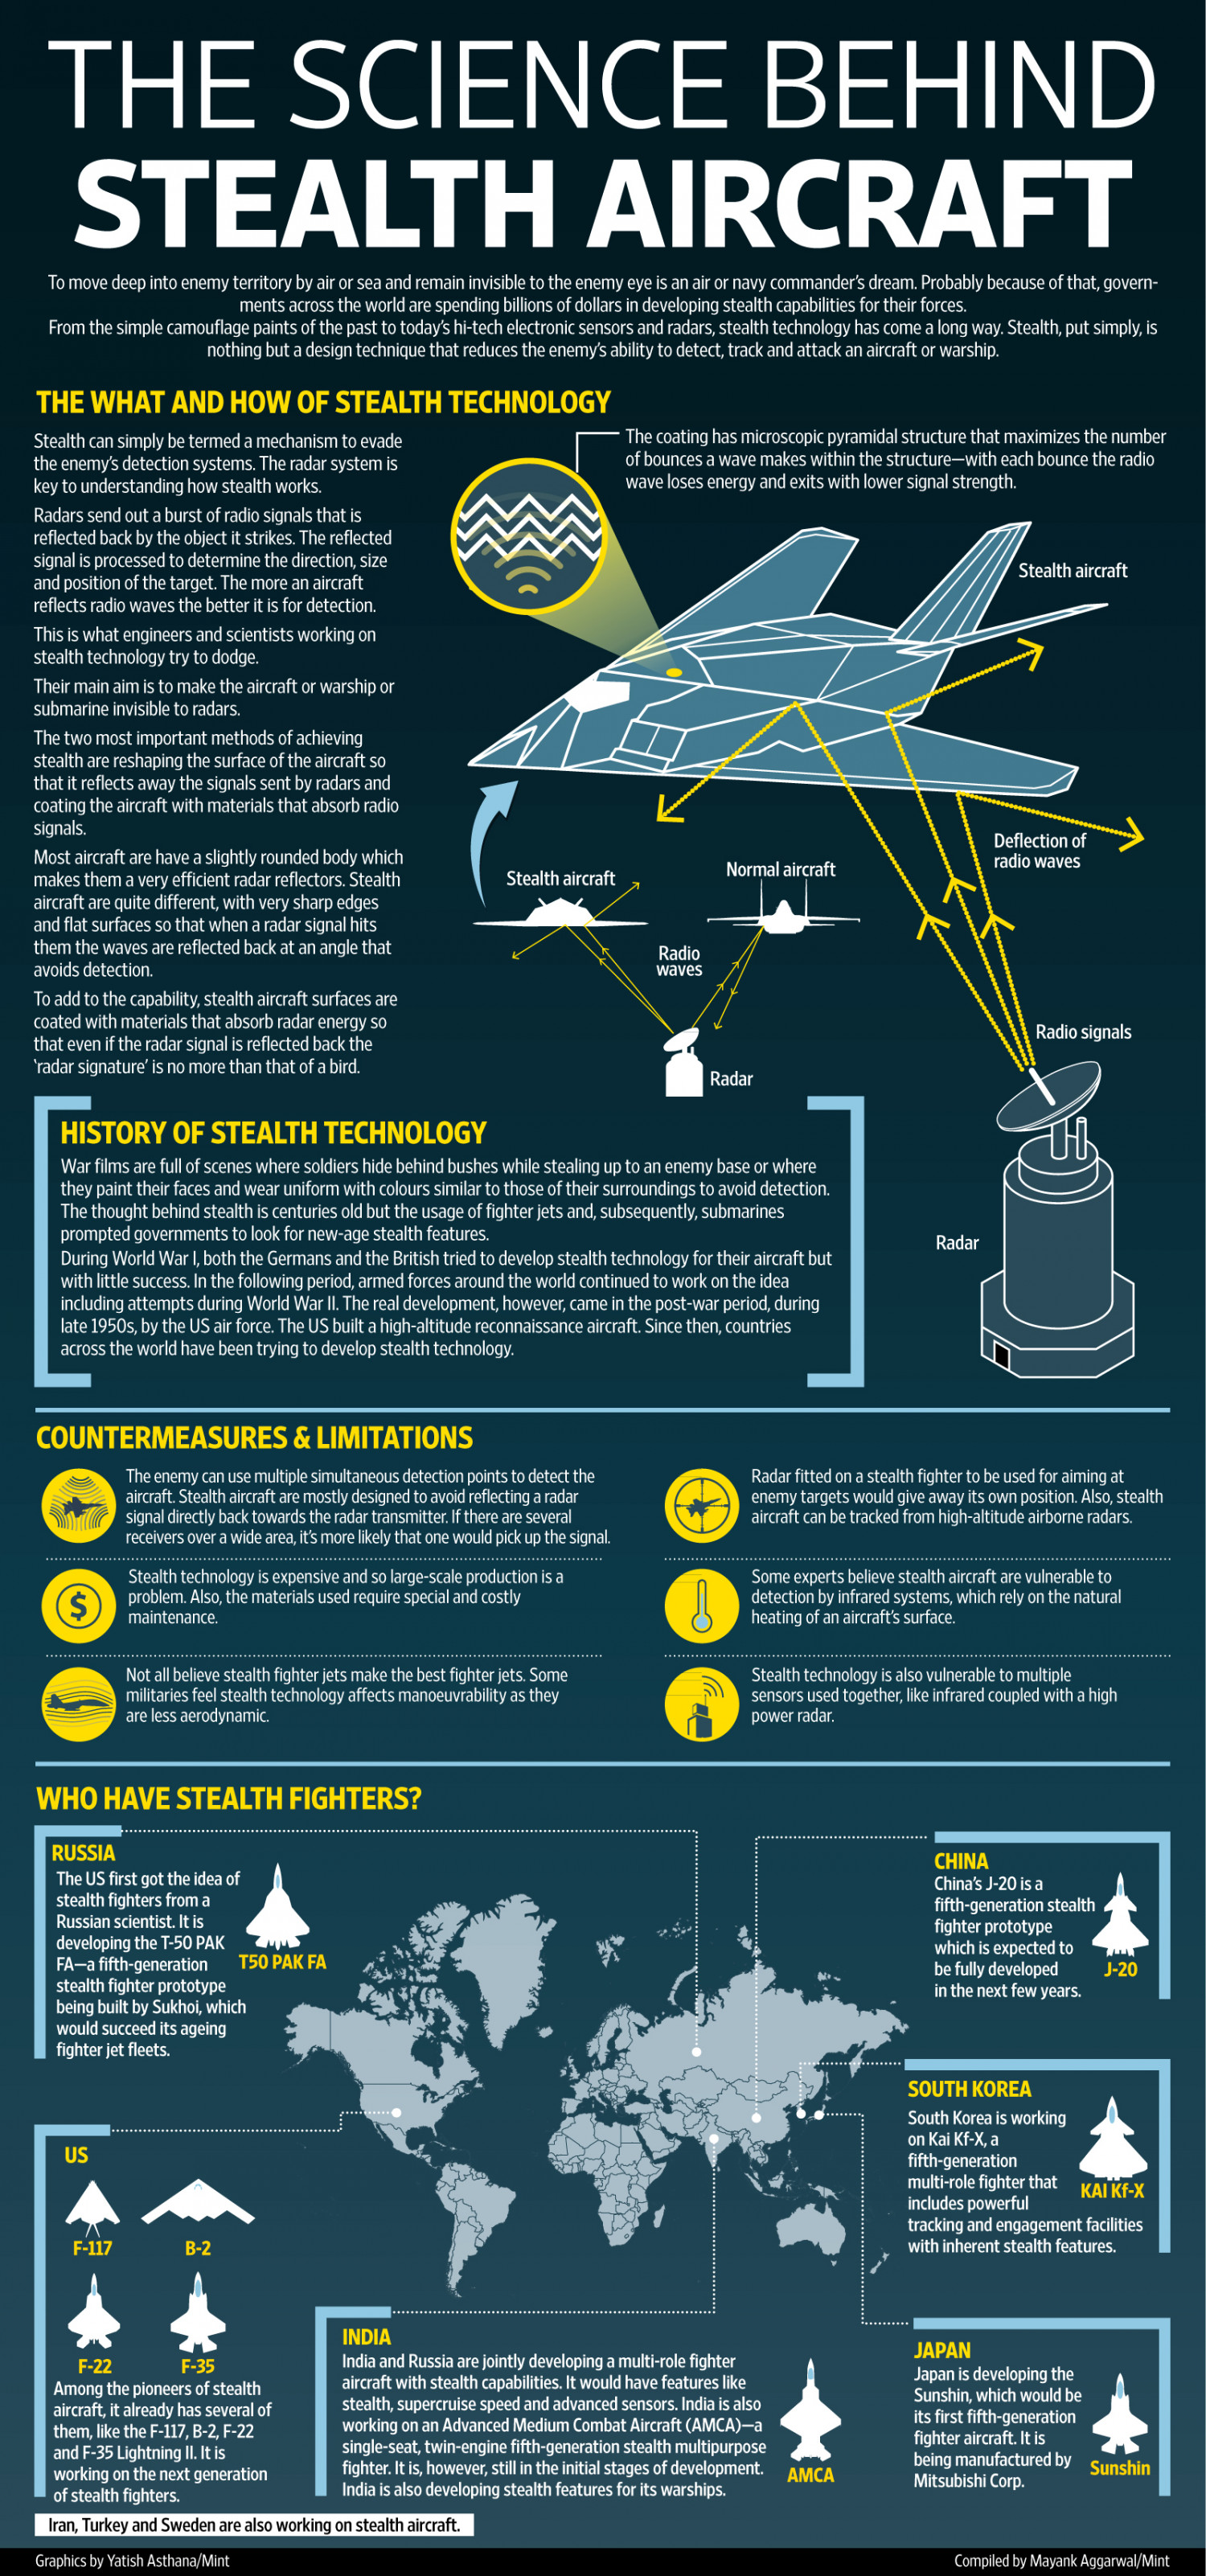 THE SCIENCE BEHIND STEALTH AIRCRAFT